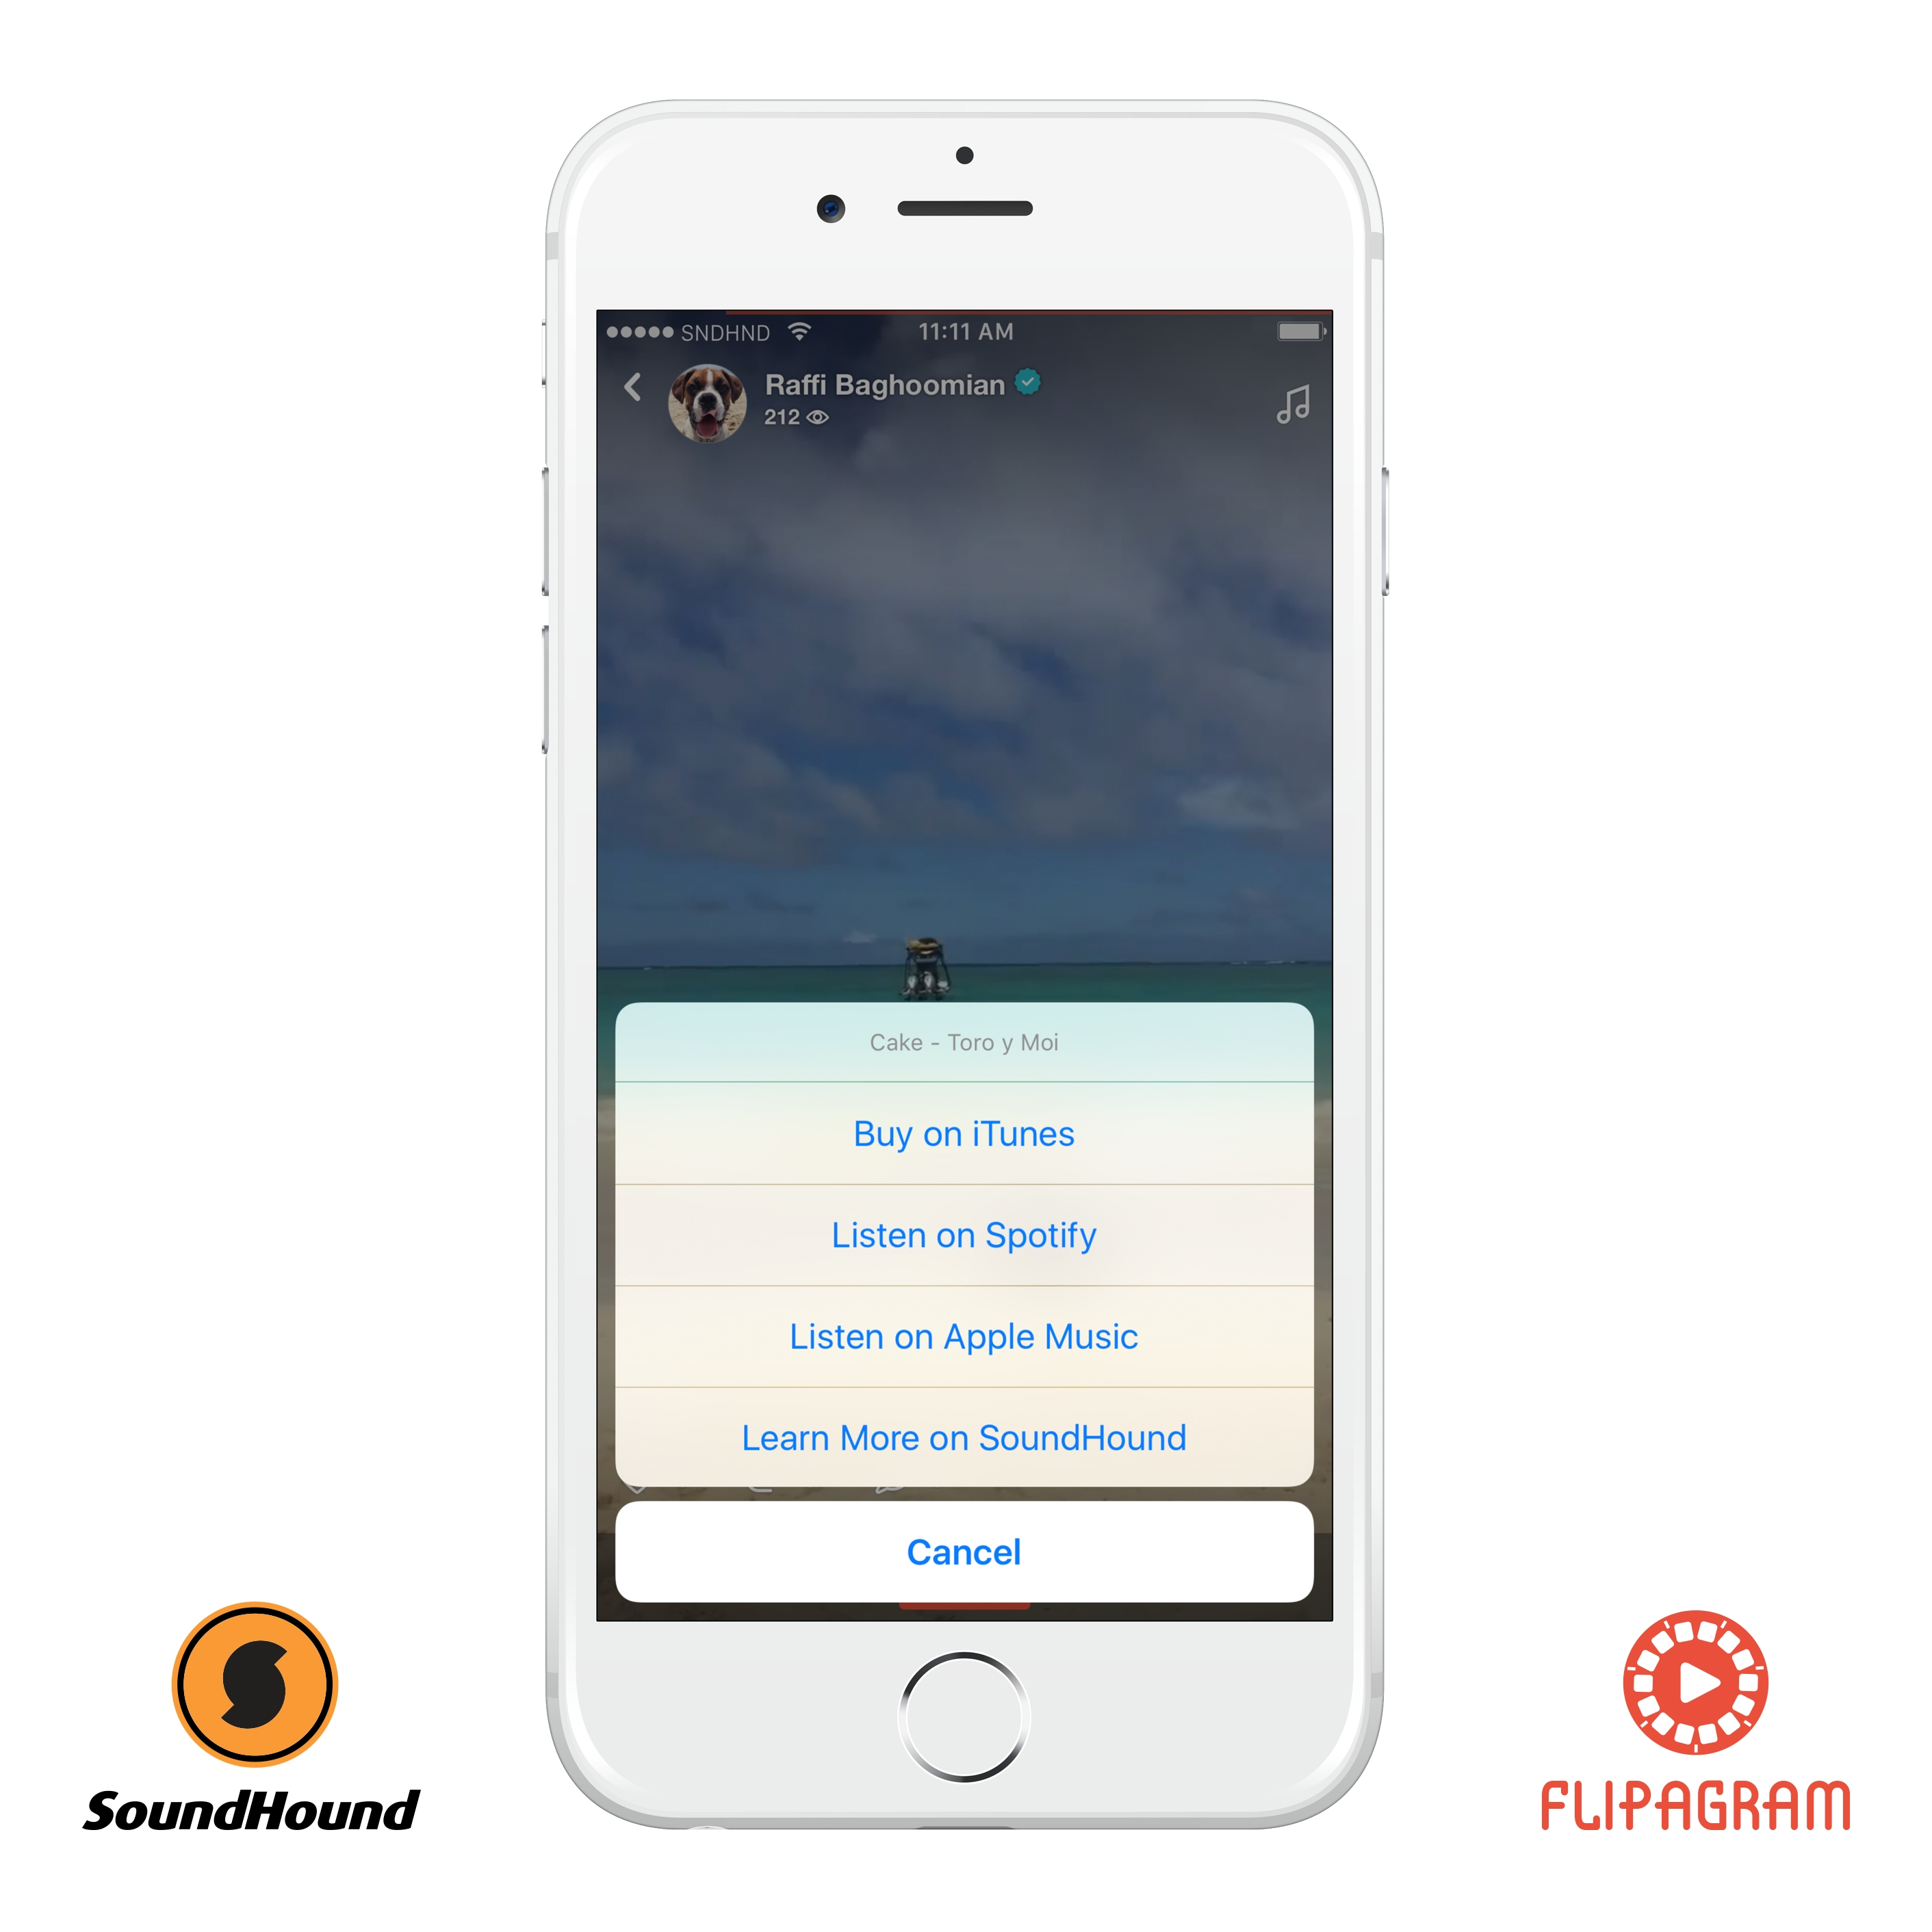 Flipagram Partners with SoundHound to Add Any Song You Hear